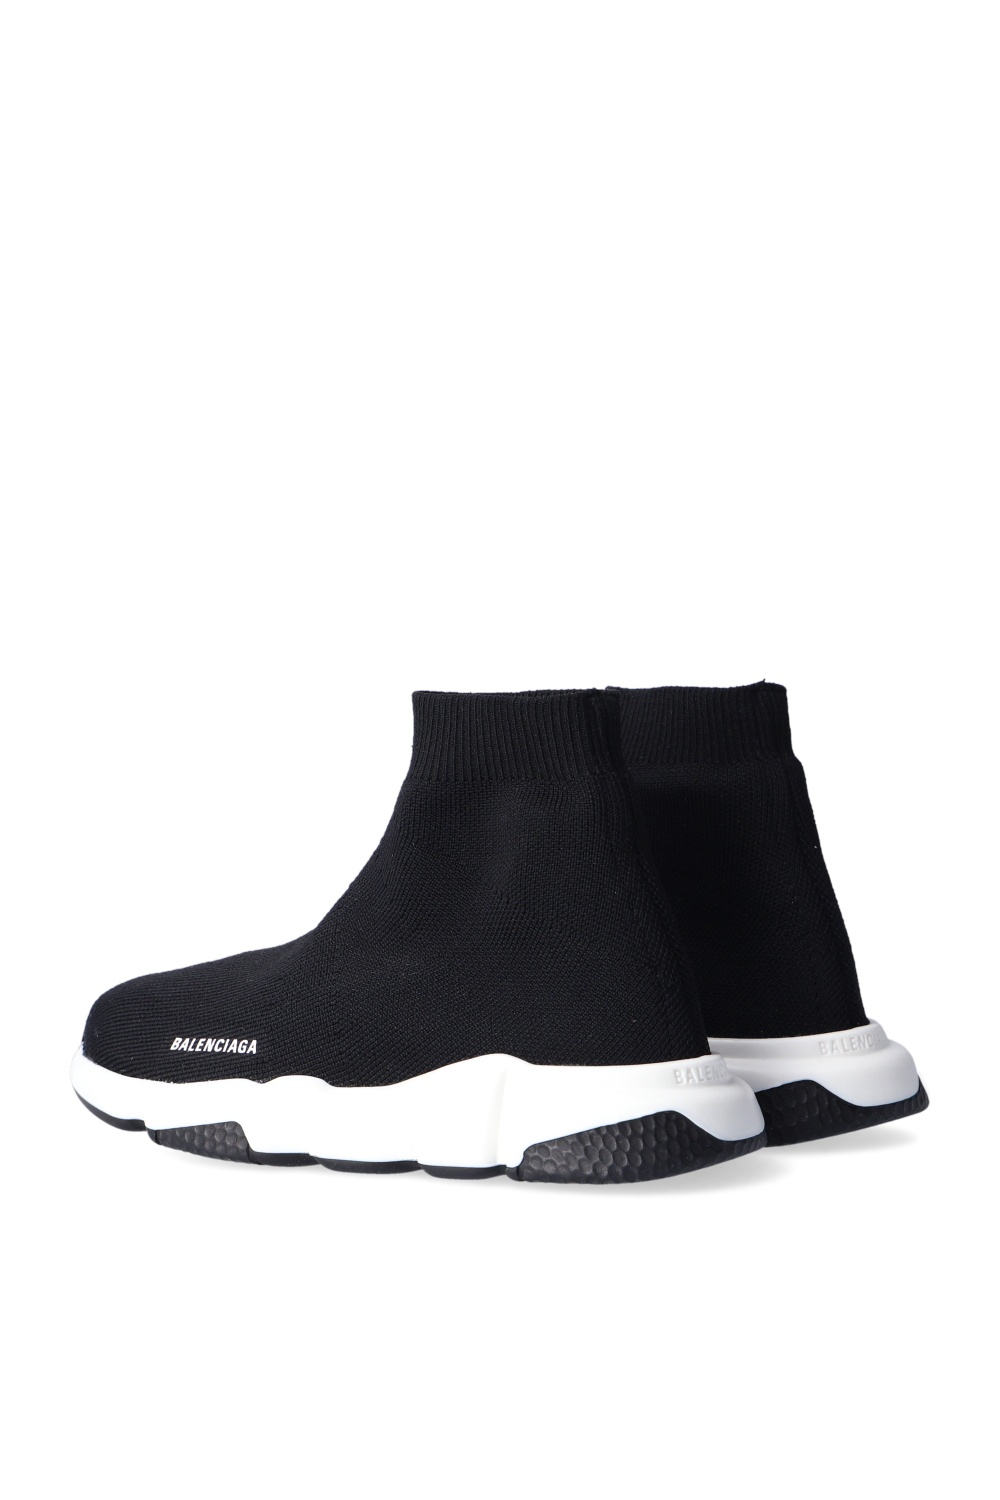 Balenciaga Kids 'Speed' sock sneakers